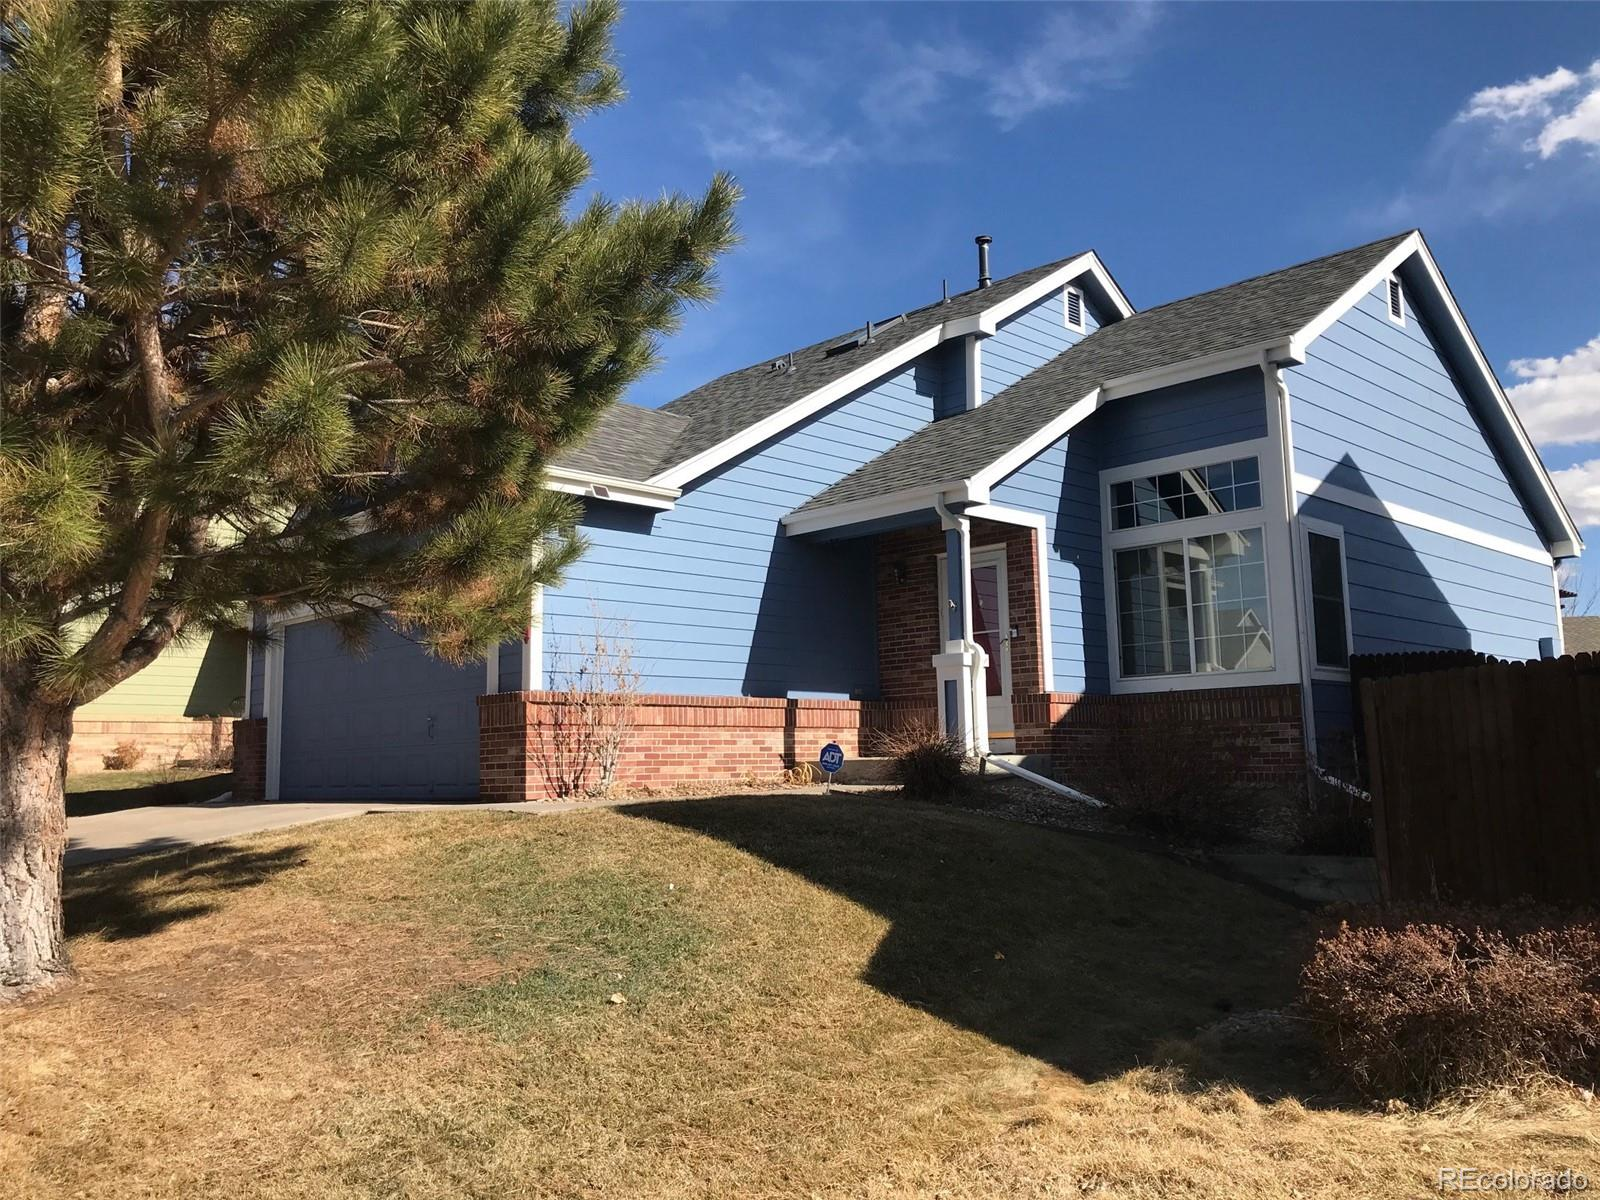 MLS# 9523937 - 19752 E Vassar Avenue, Aurora, CO 80013